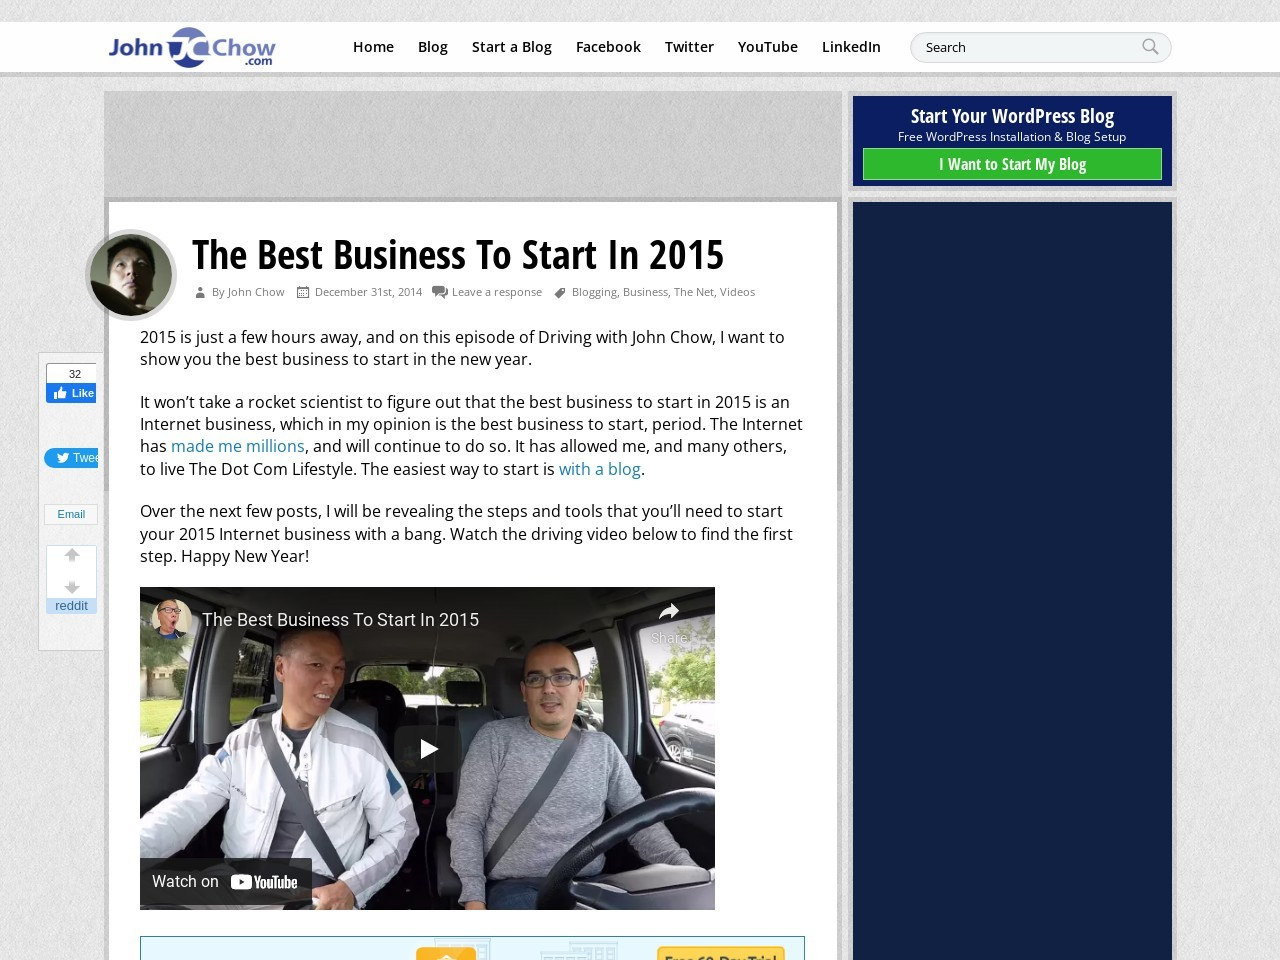 The Best Business To Start In 2015 – John Chow